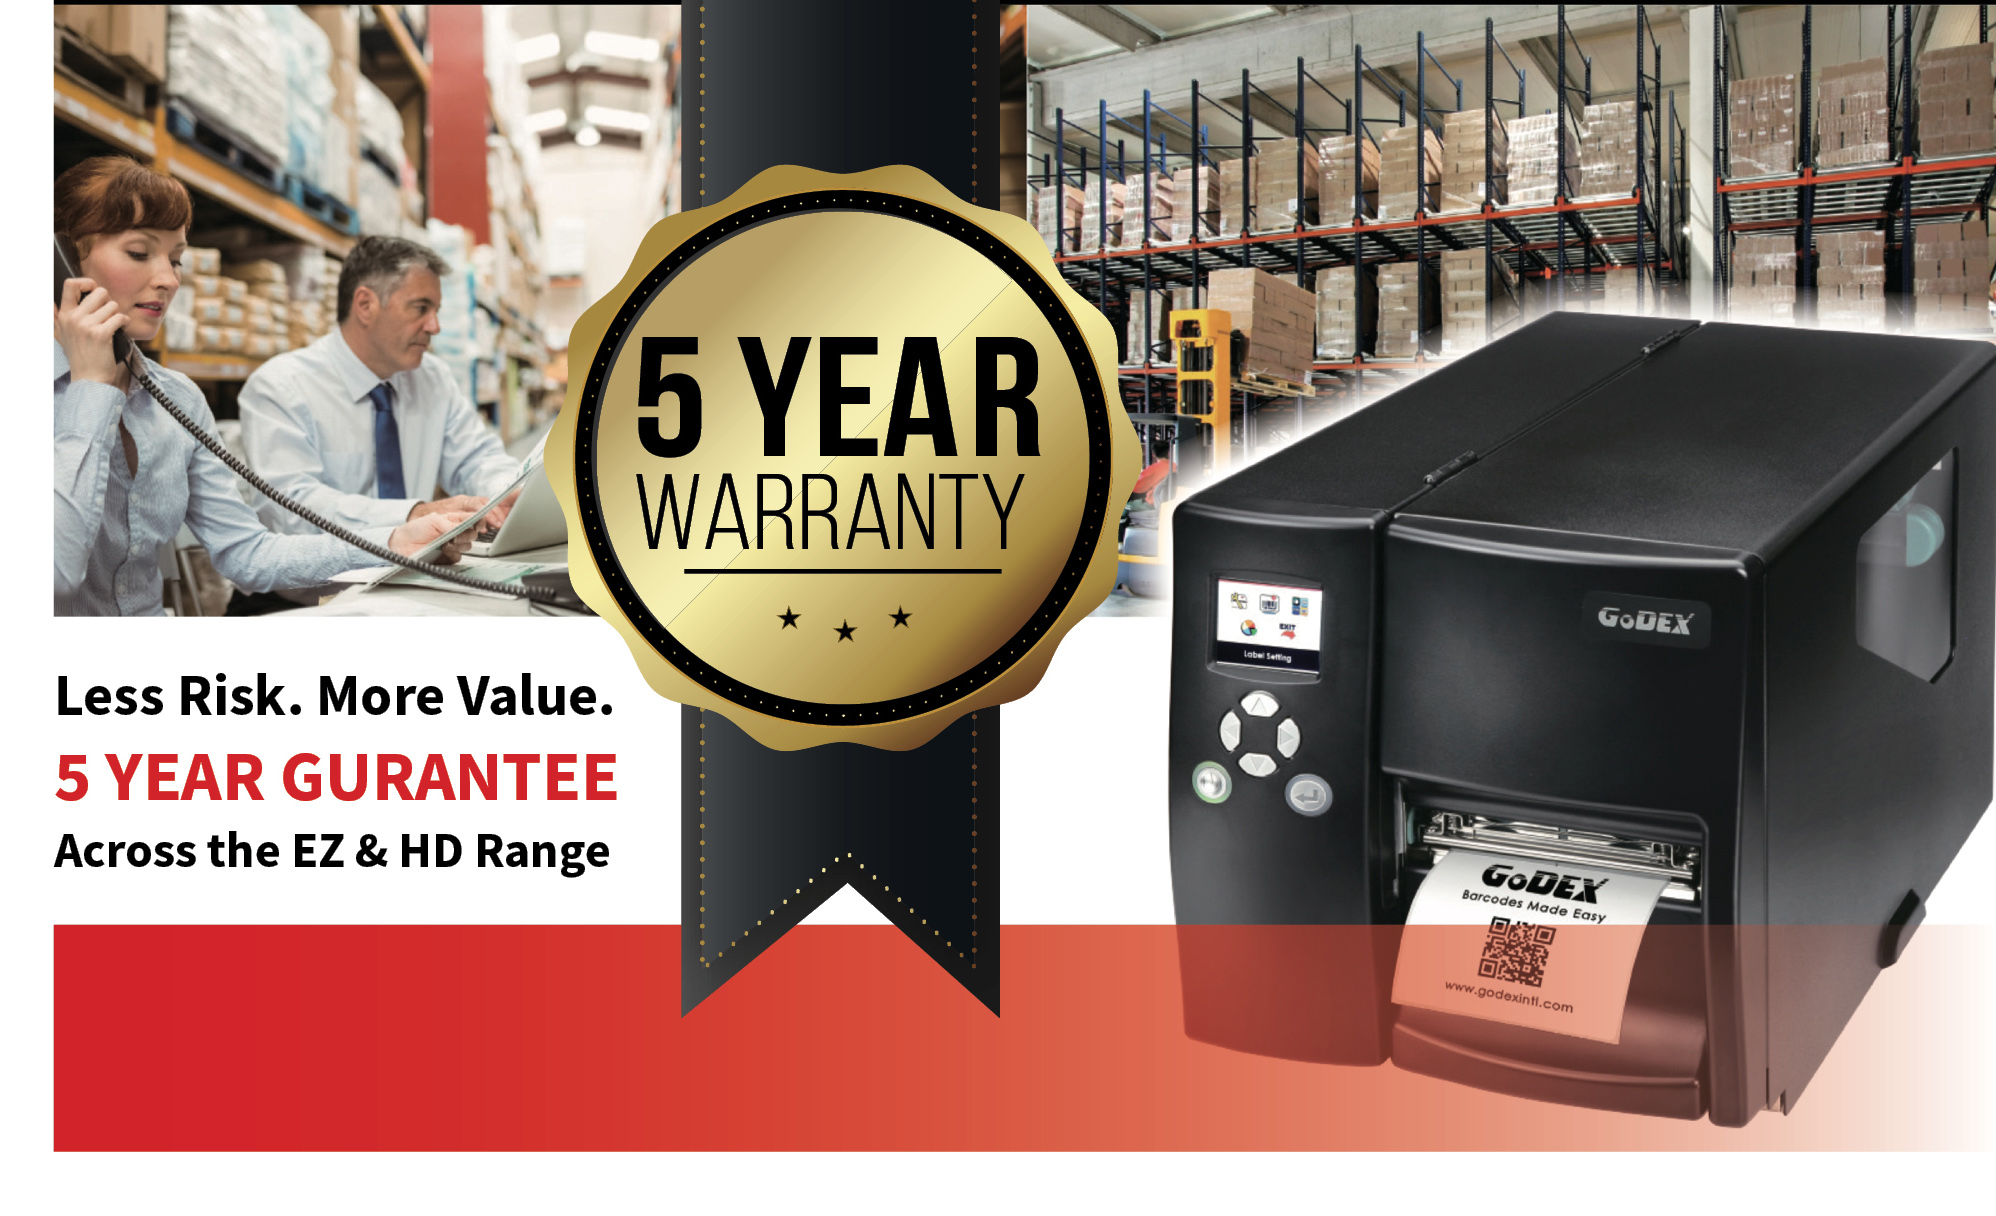 5 year GoDEX warranty